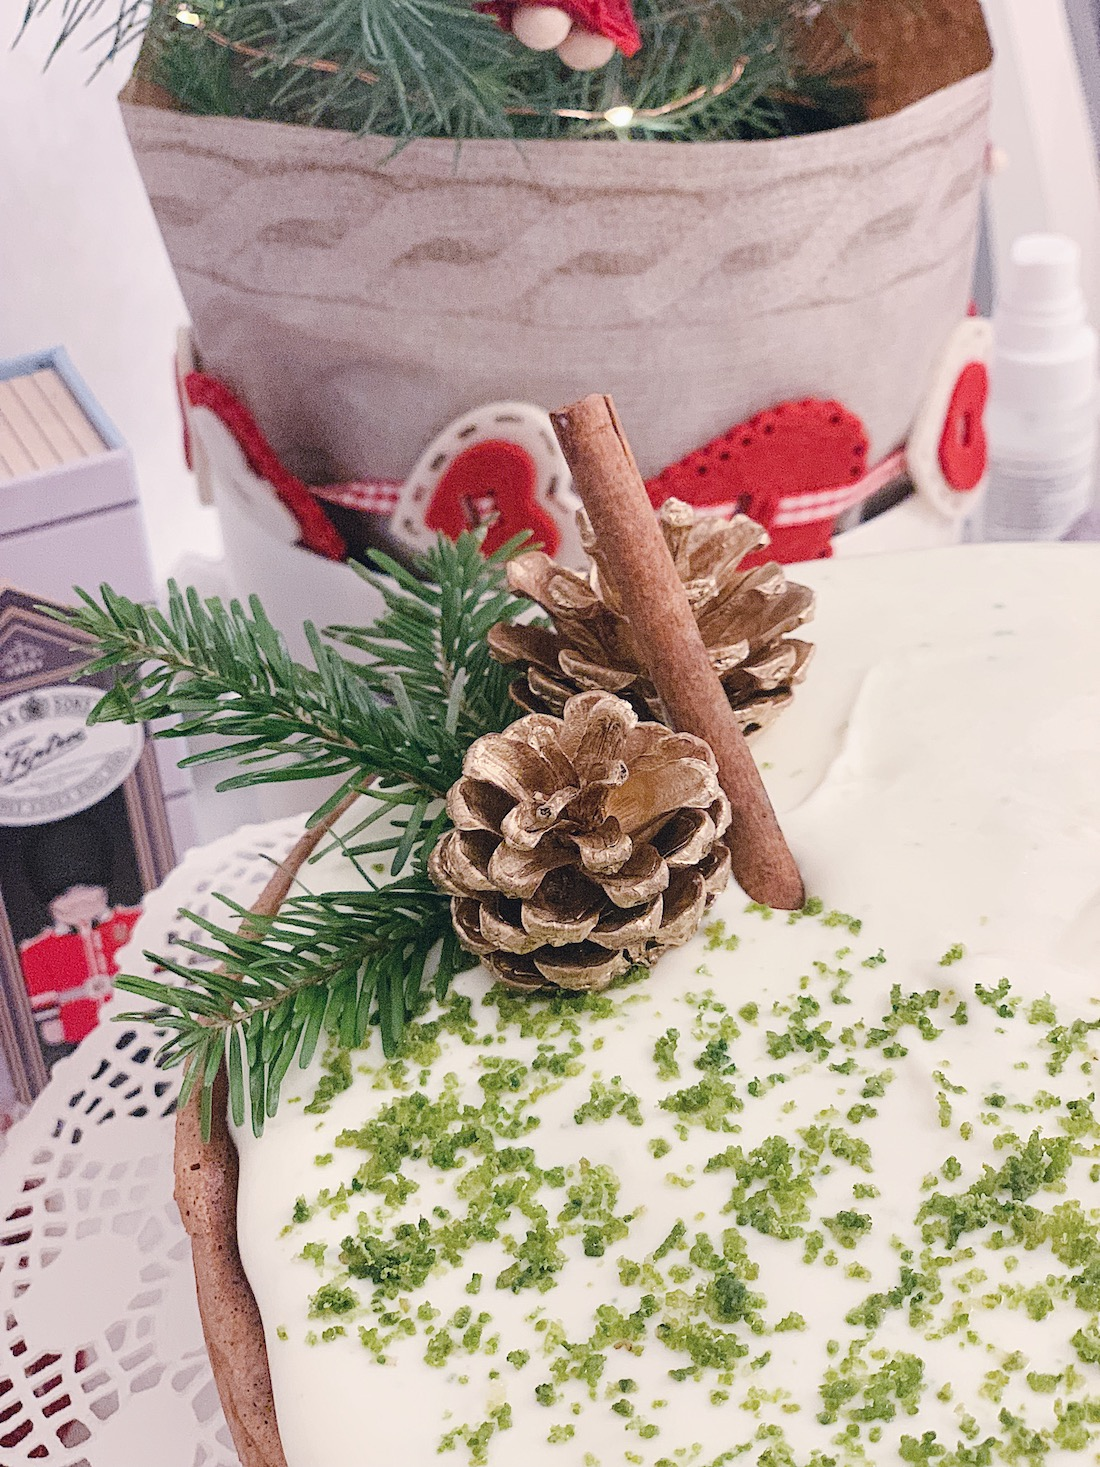 @projectfairytale: Lime Cream Cake for the Holiday Parties